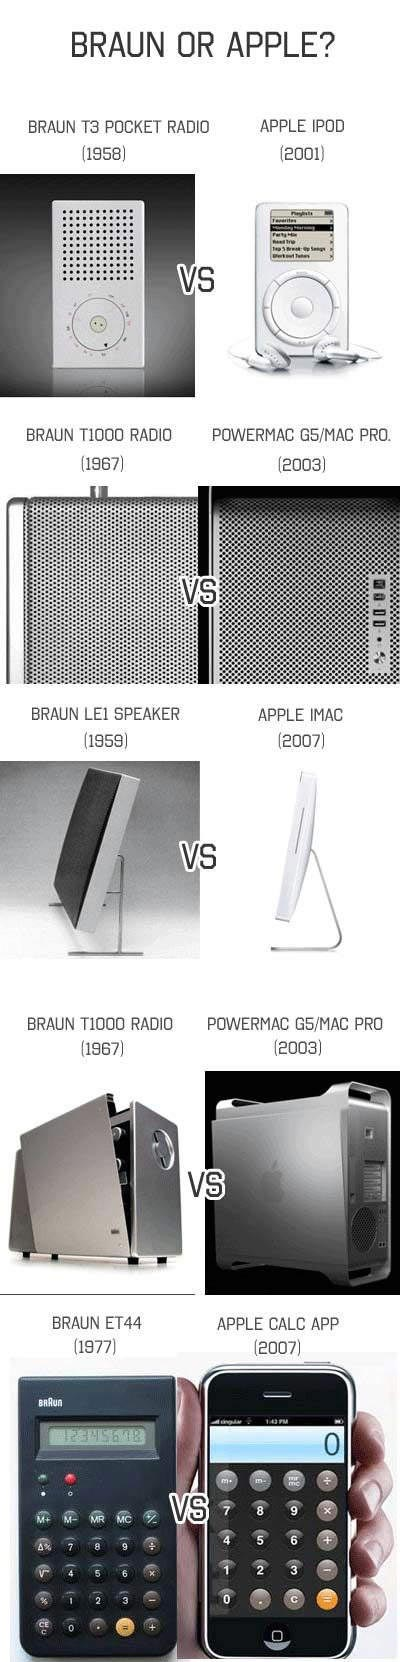 apple vs. braun